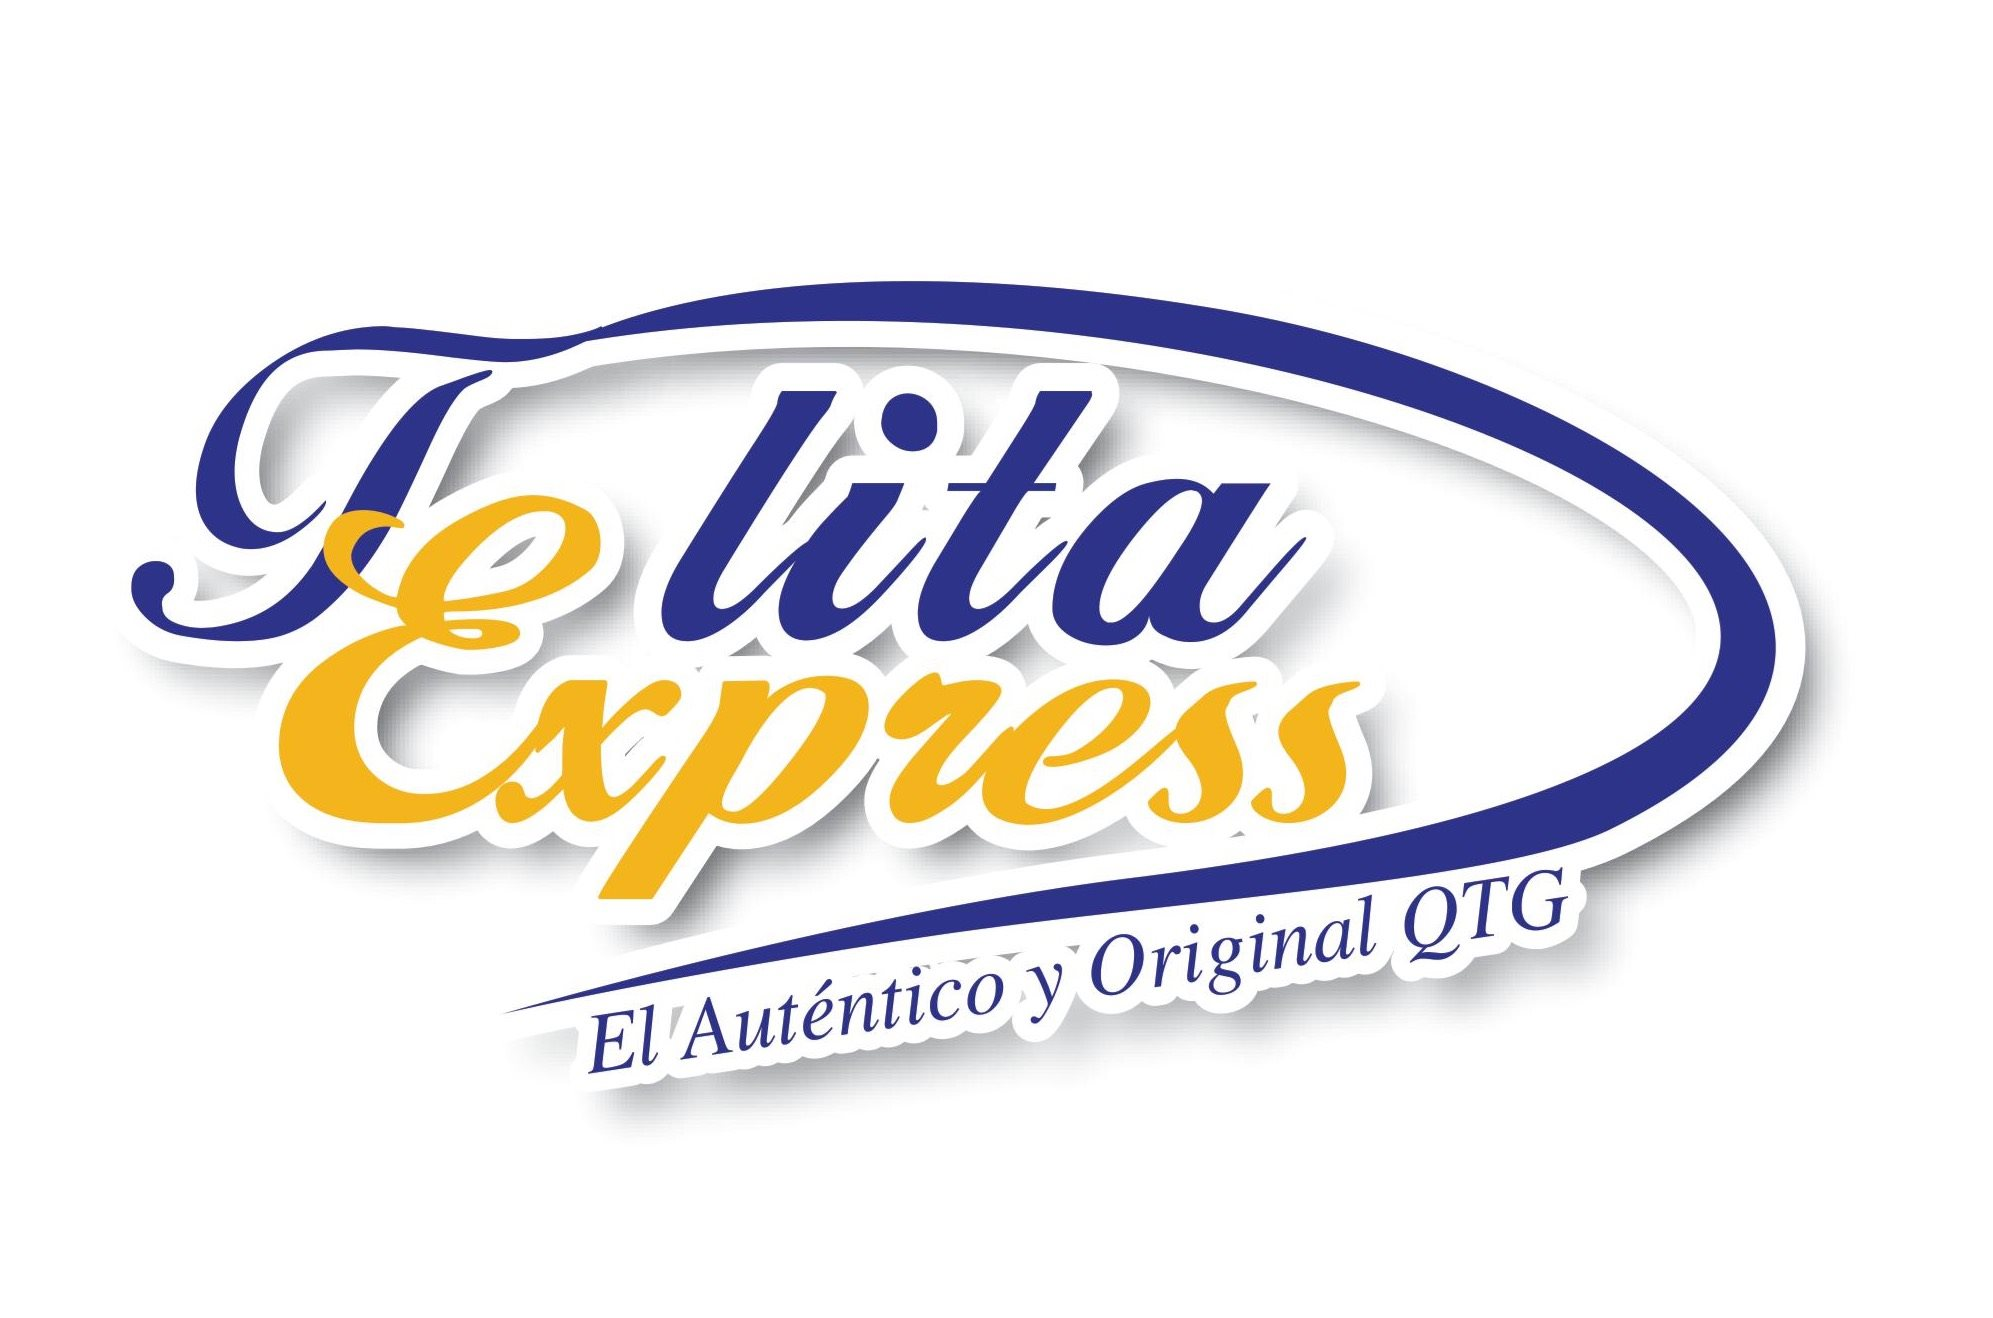 Telita Express Customer Services New AGE,C.A